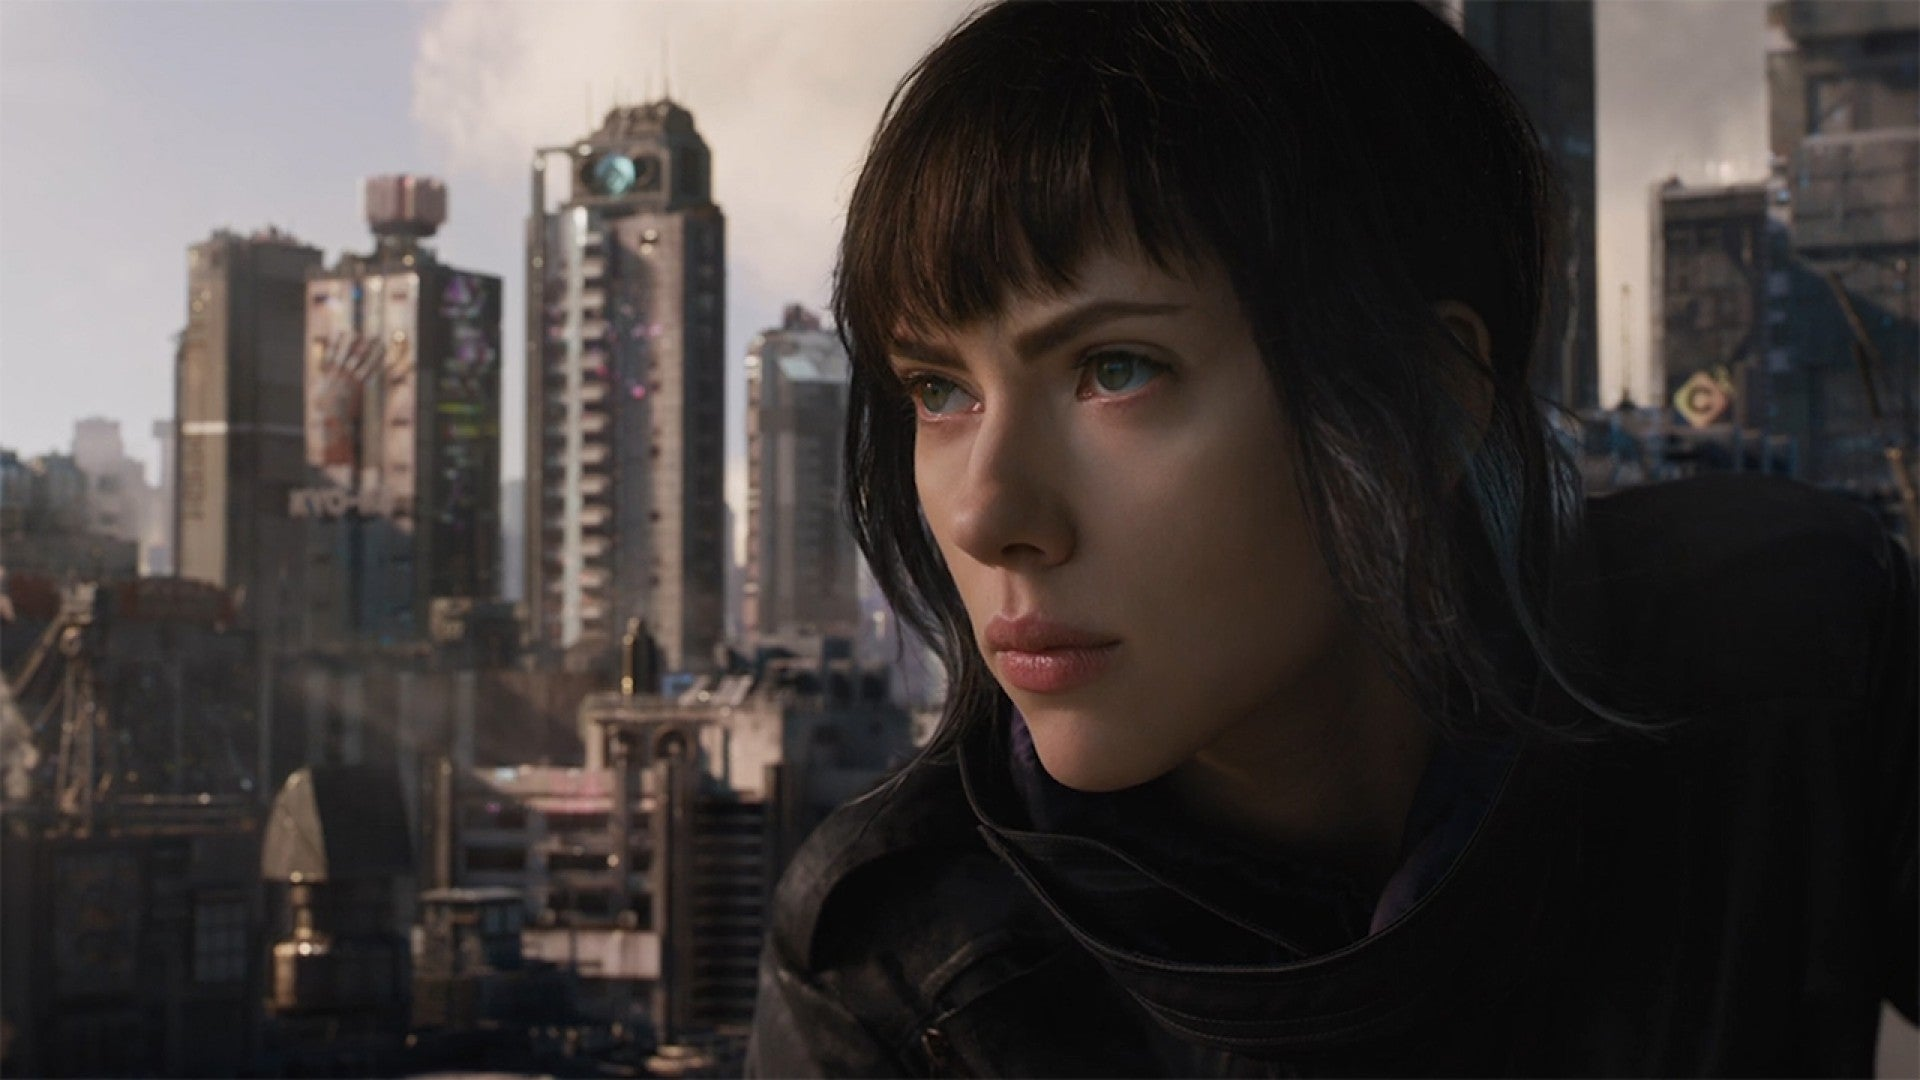 Scarlett Johansson Goes Full On Cyborg In Badass New Ghost In The Shell Trailer Watch Now Entertainment Tonight